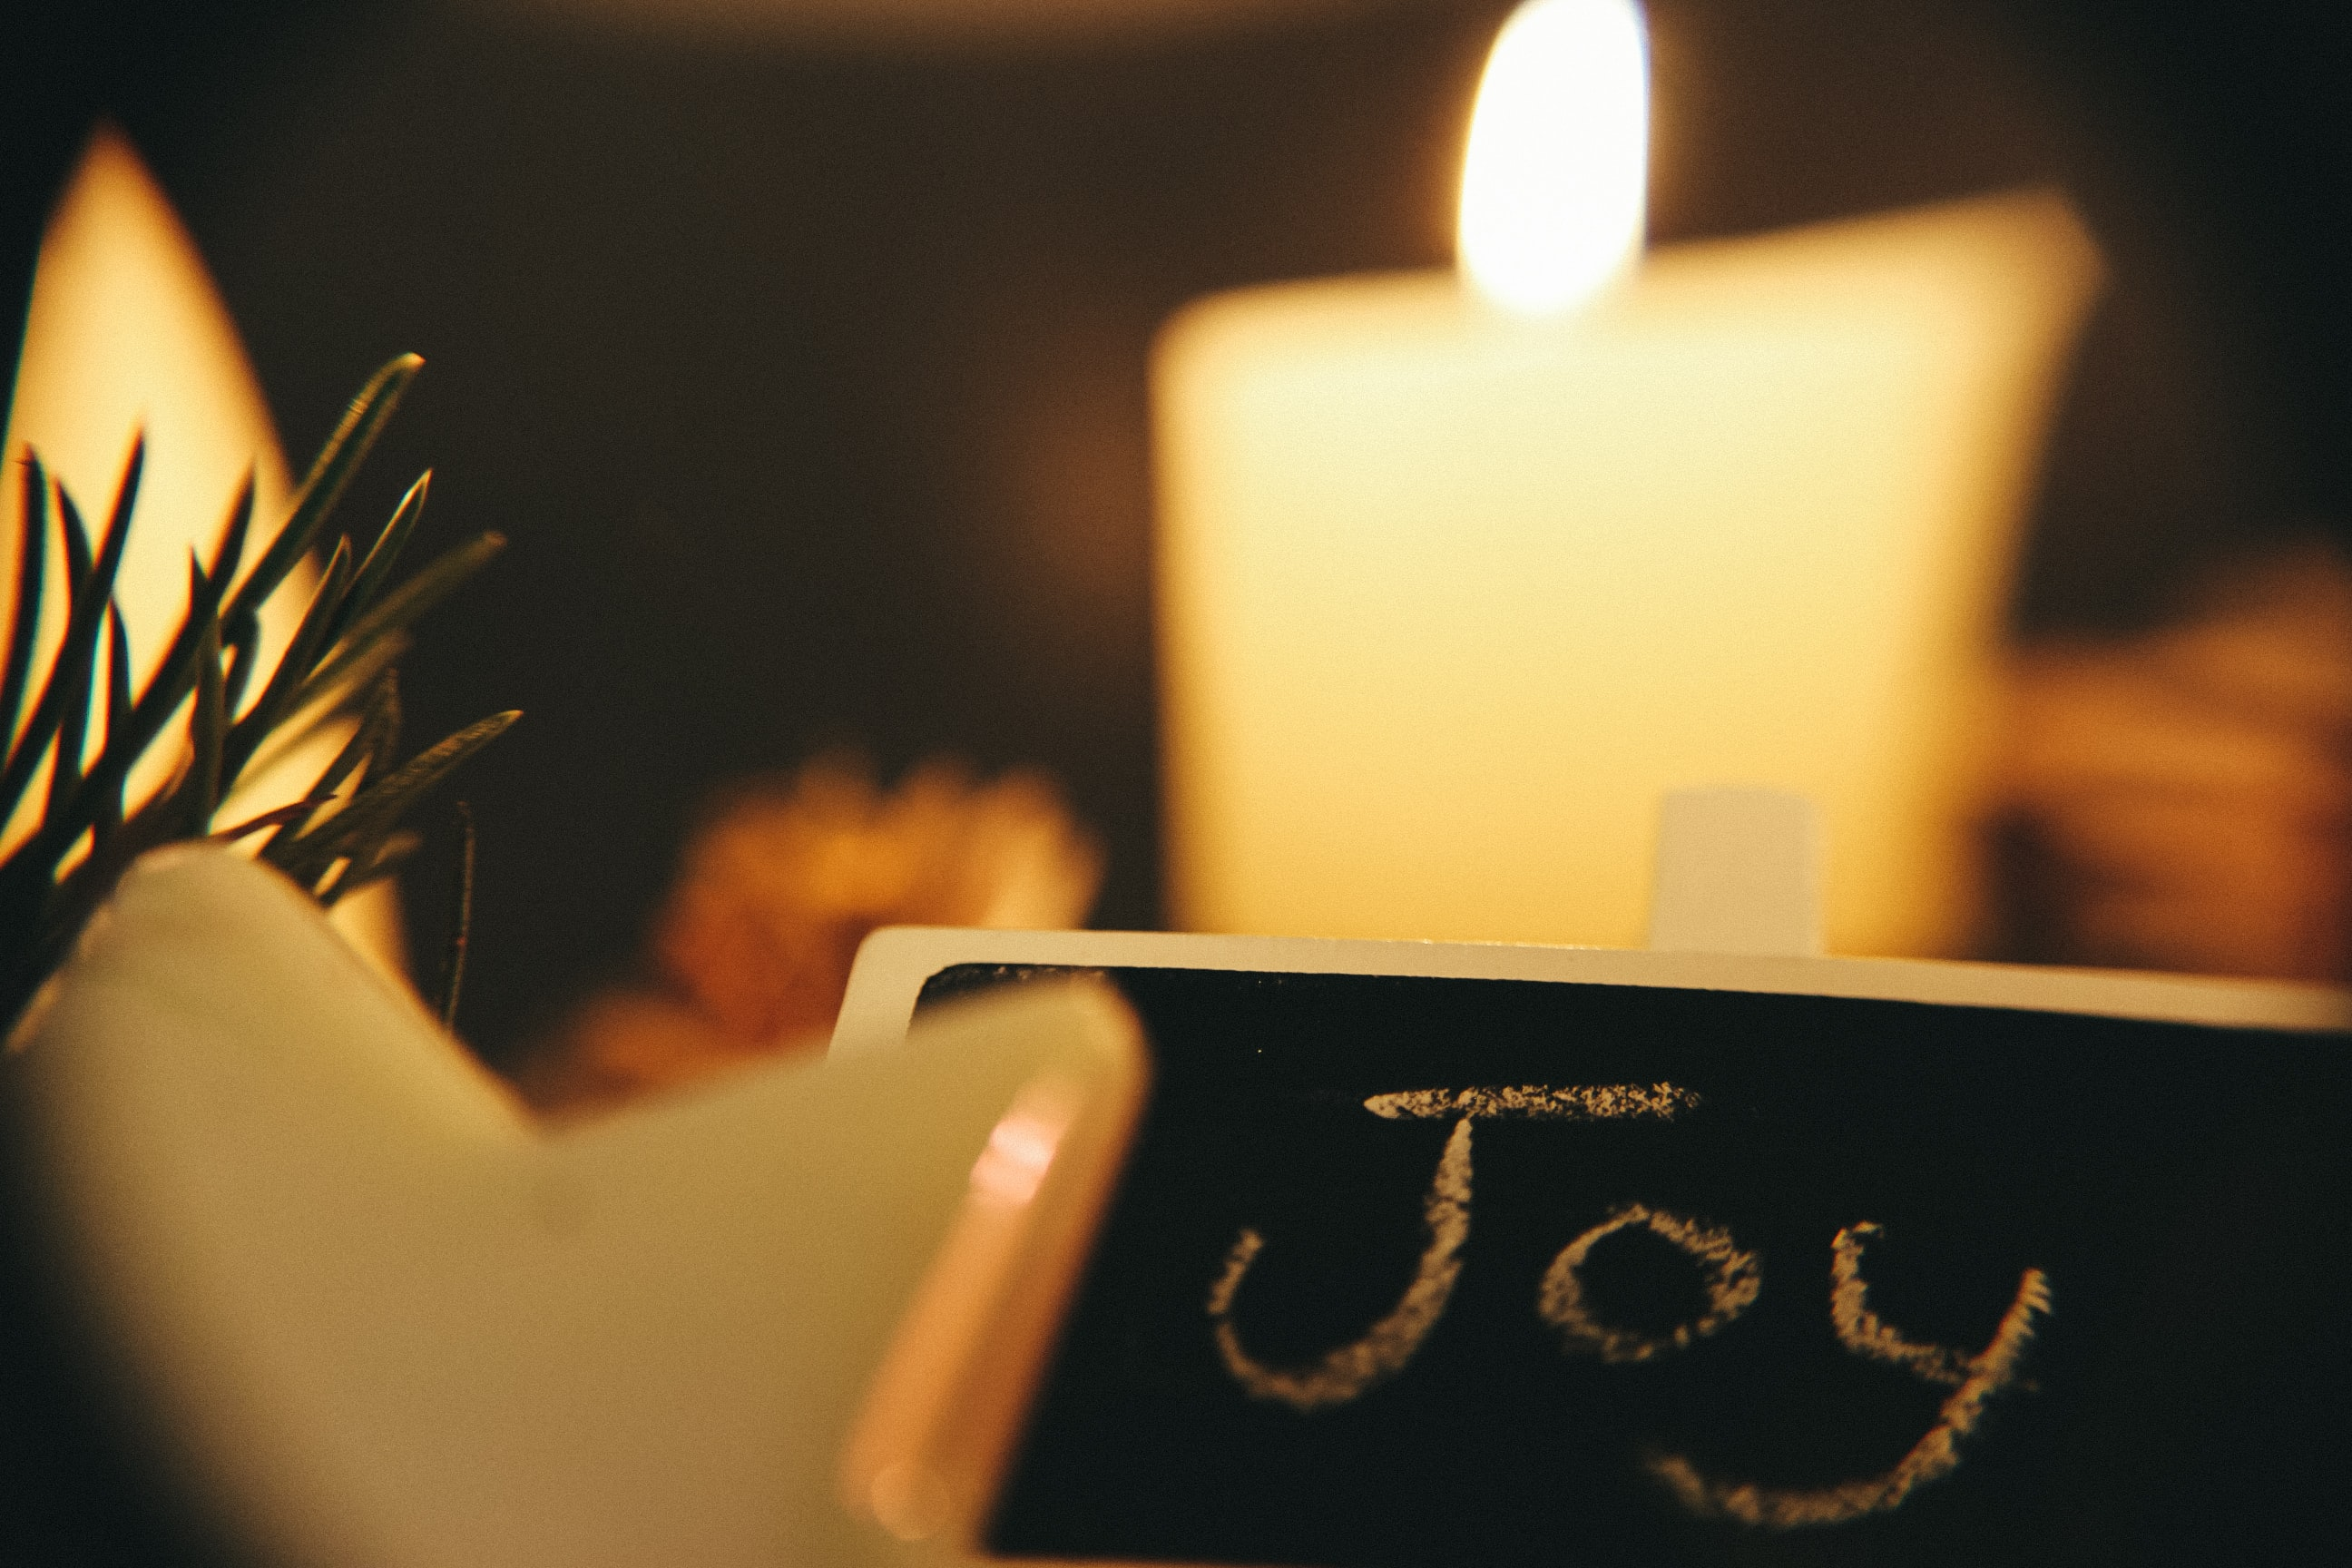 """A black chalkboard that says """"Joy,"""" in white chalk, with white candles in the background."""